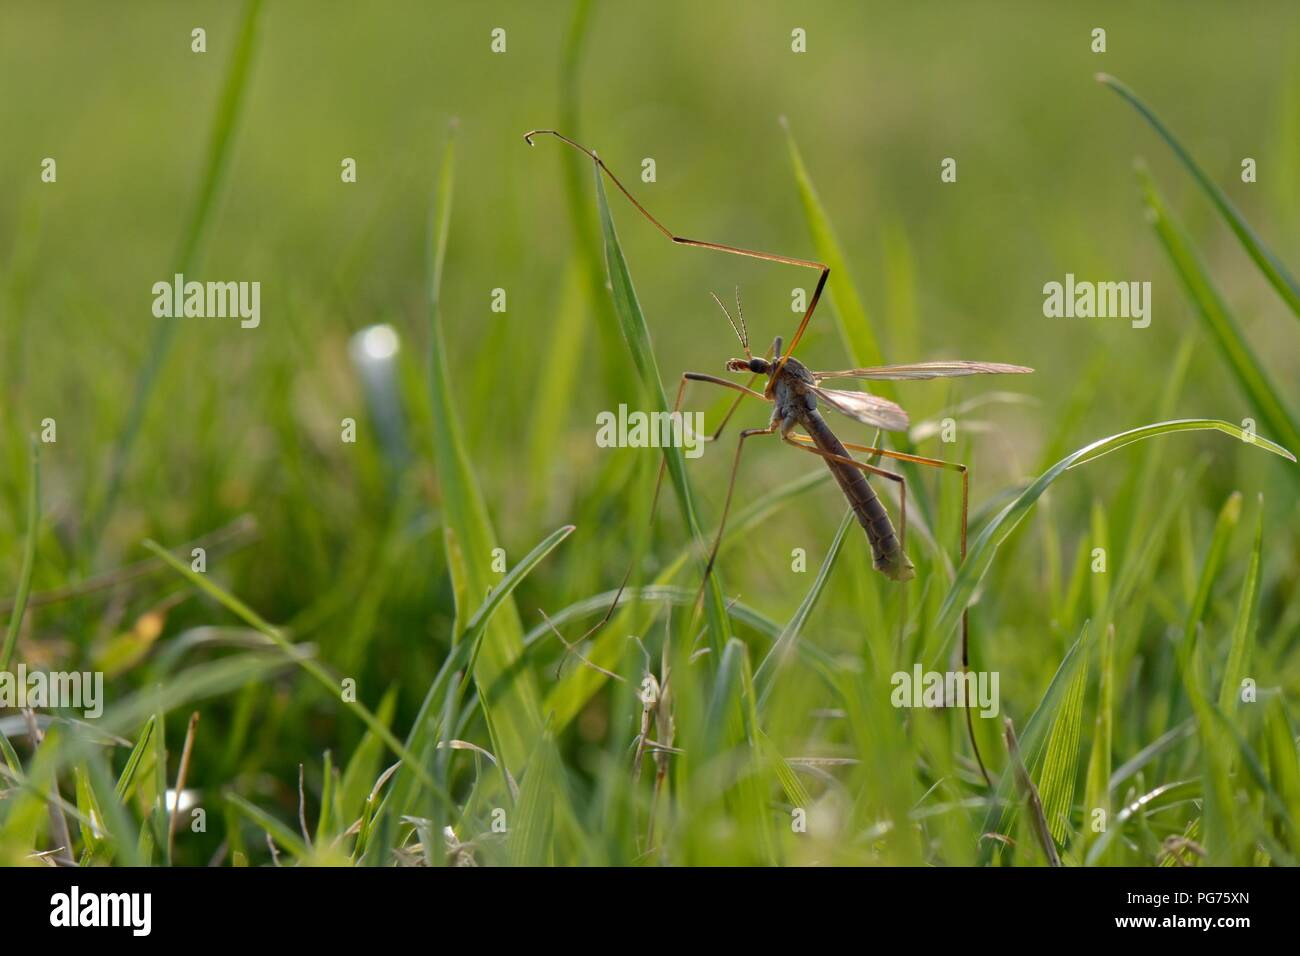 Male Common European Crane fly / Daddy long legs (Tipula paludosa) recently emerged, resting on grass in riverside water meadow, Wiltshire, September - Stock Image